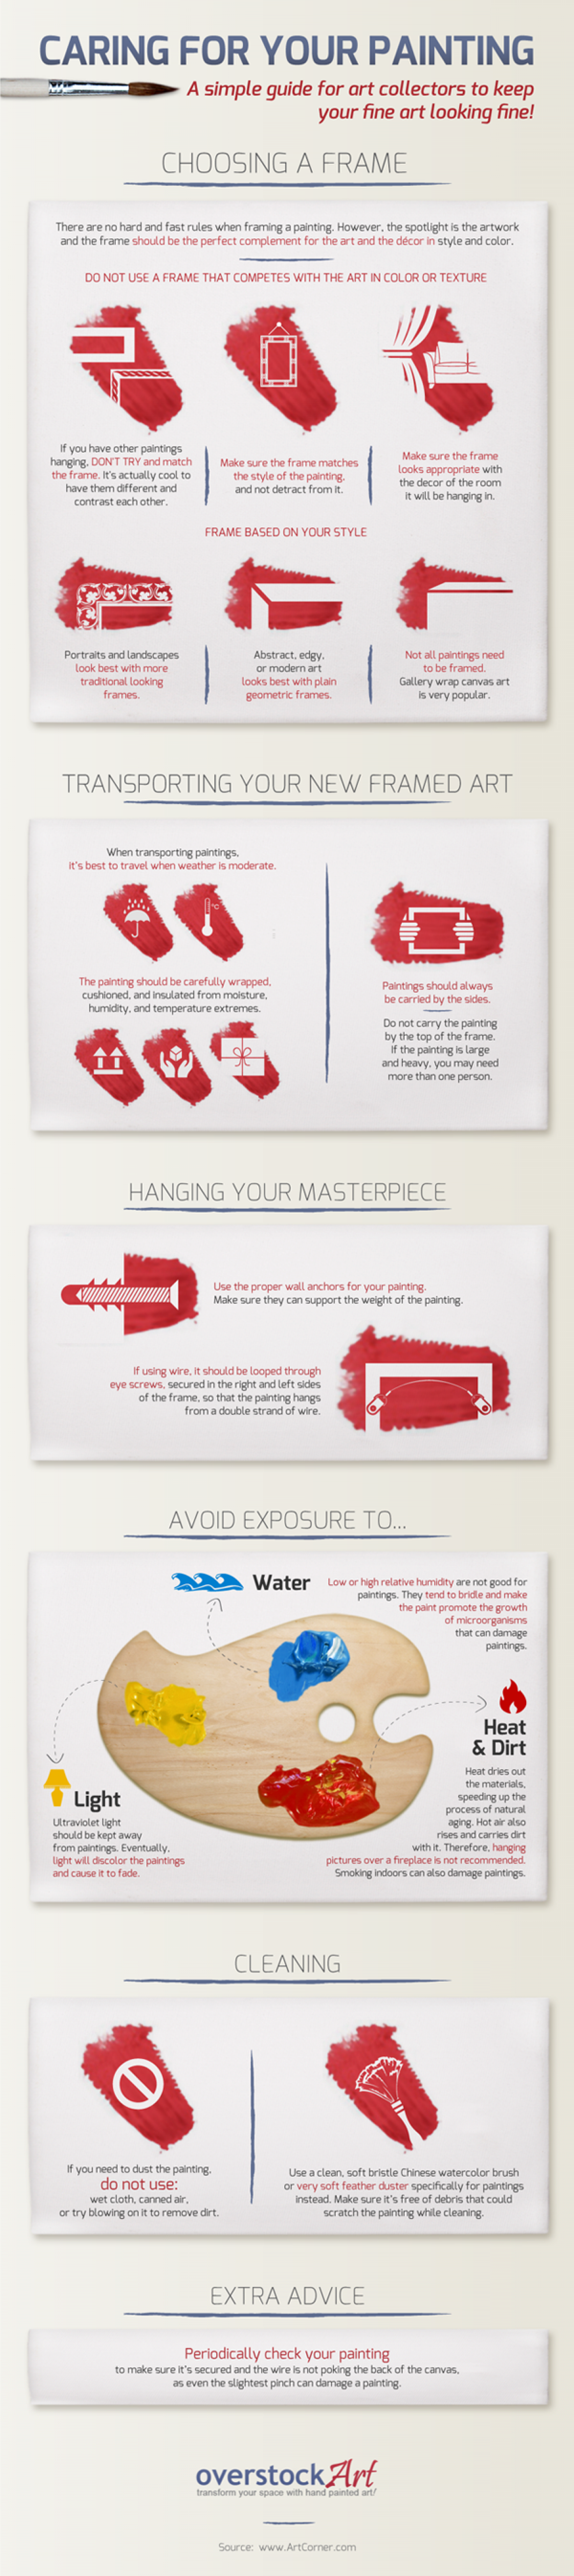 Caring for your Painting Guide Infographic